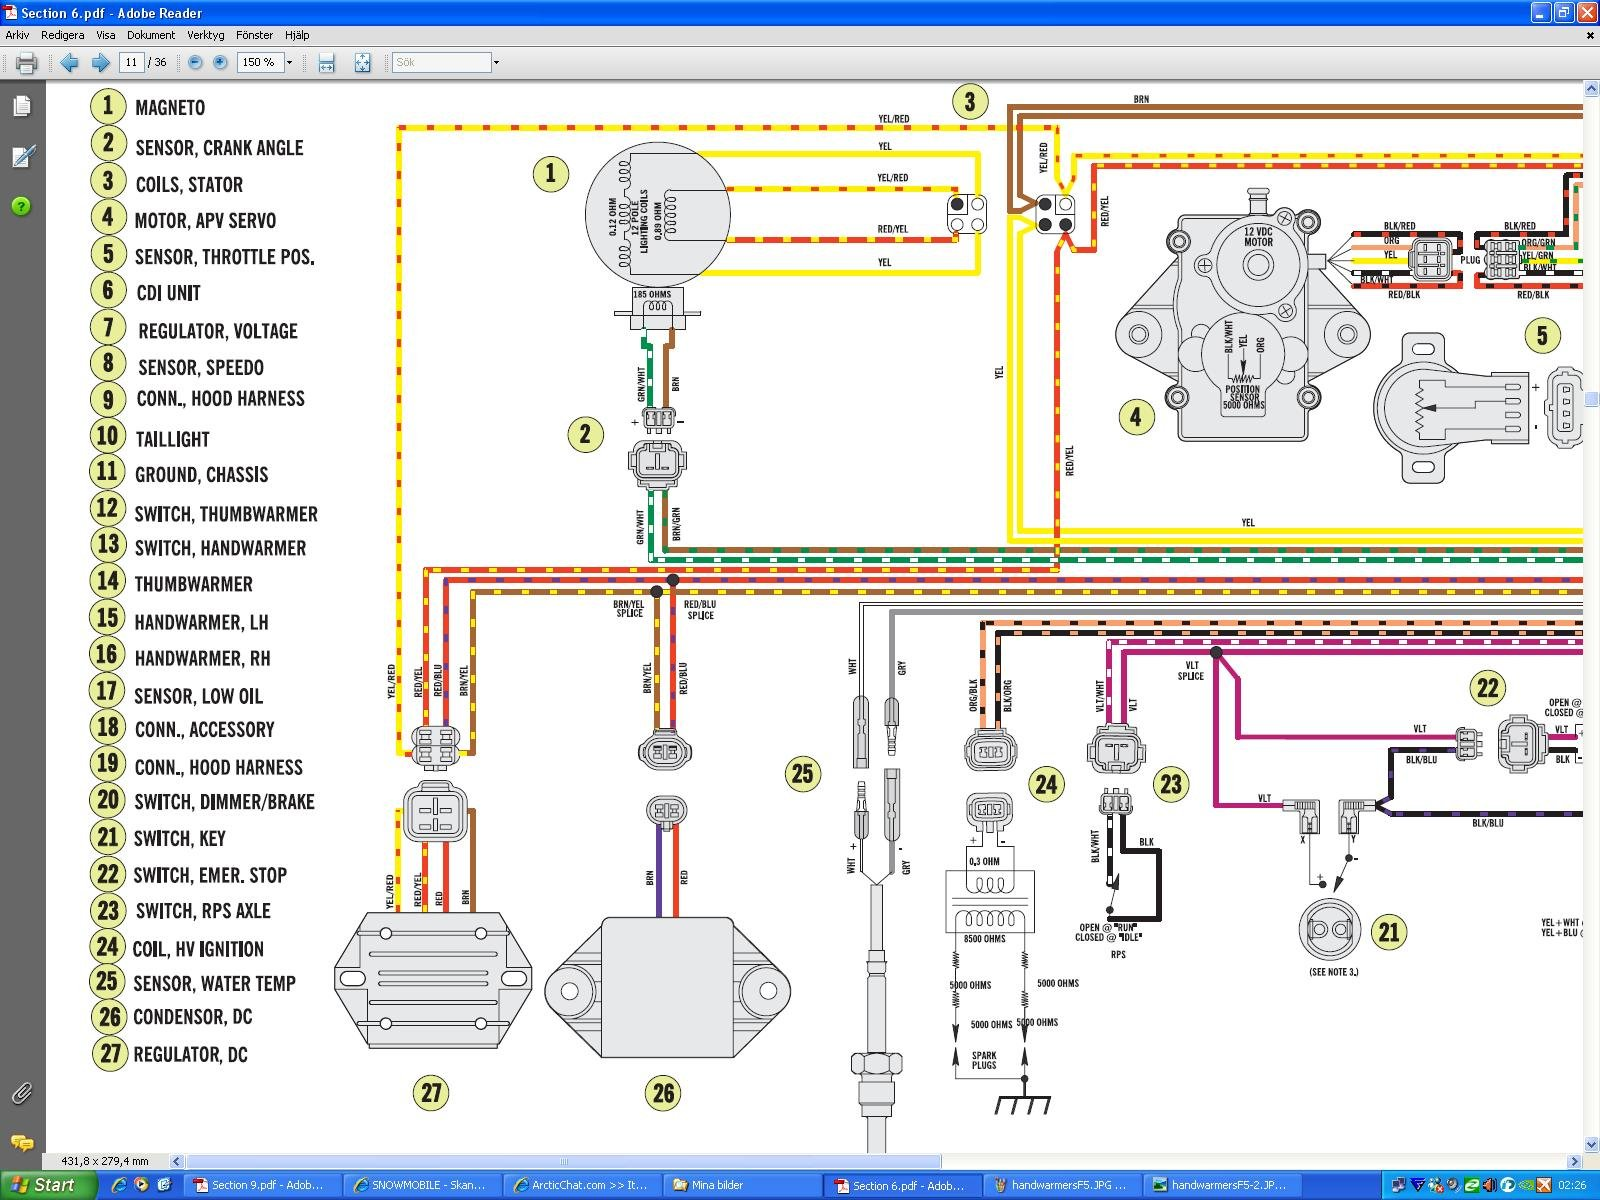 polaris predator wiring schematic images wiring diagram 2005 polaris predator 500 on scrambler wiring schematic